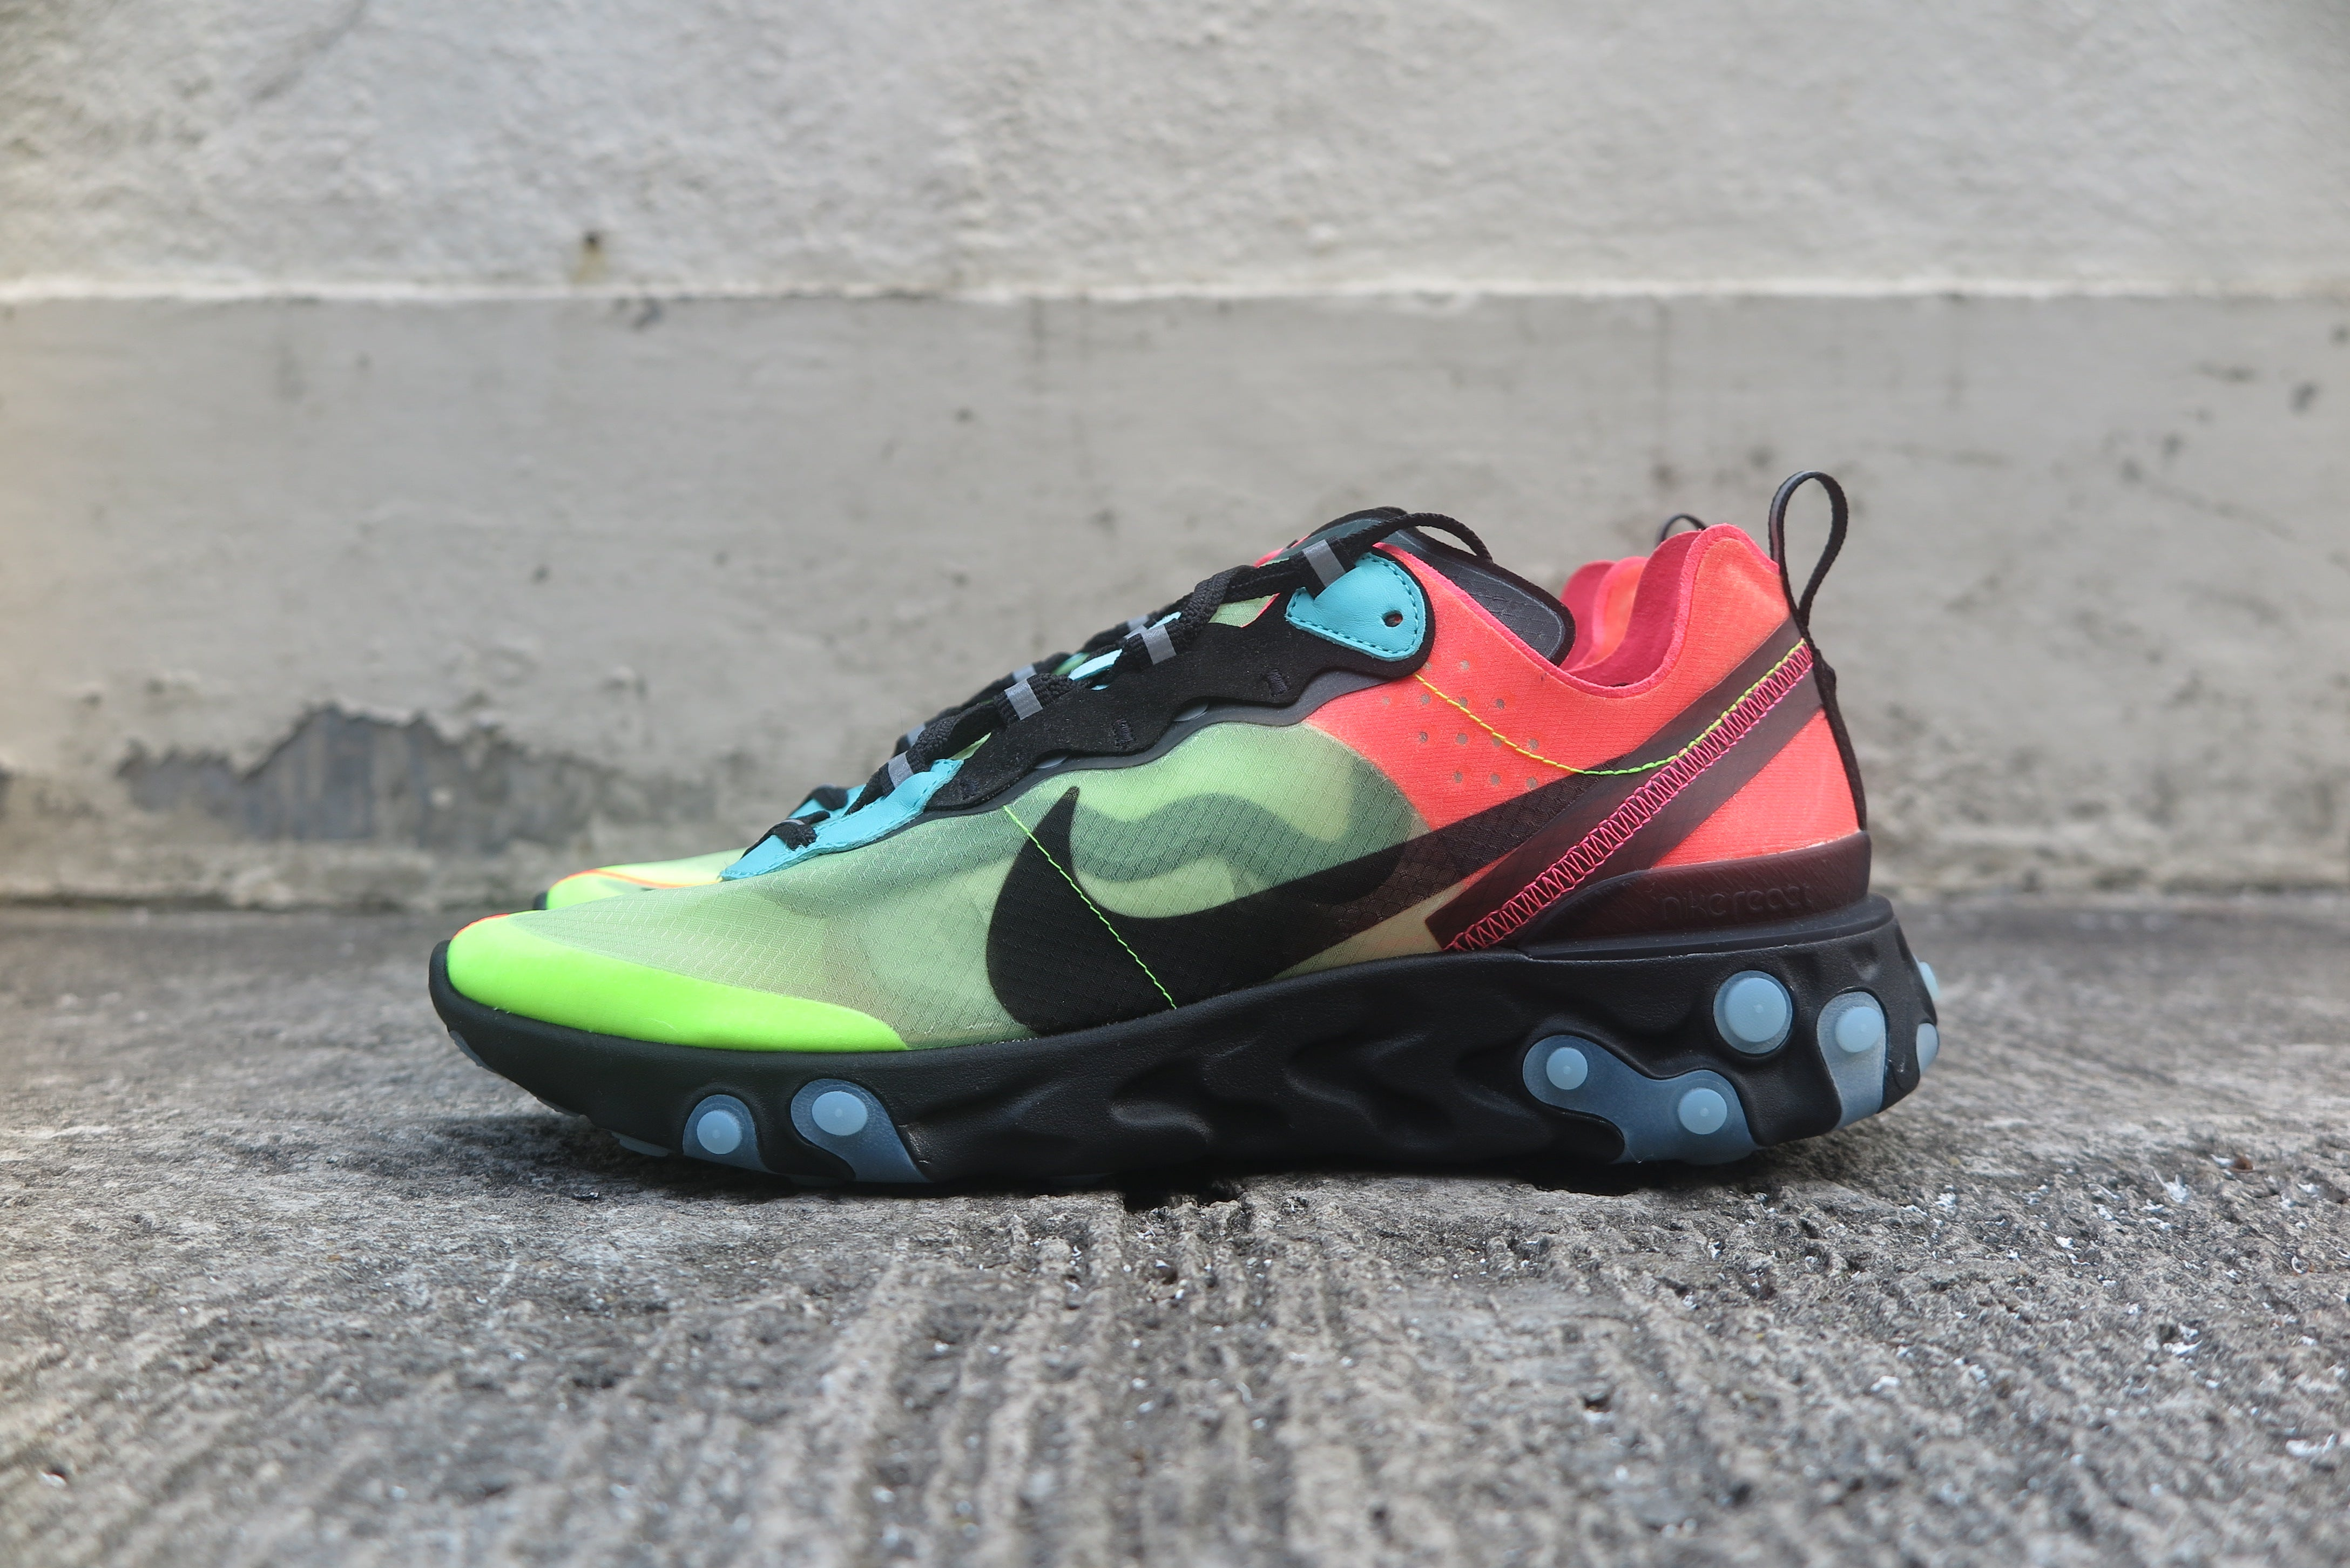 Nike React Element 87 - Volt/Aurora Green/Racer Pink/Black #AQ1090-700-Sneakers-Navy Selected Shop